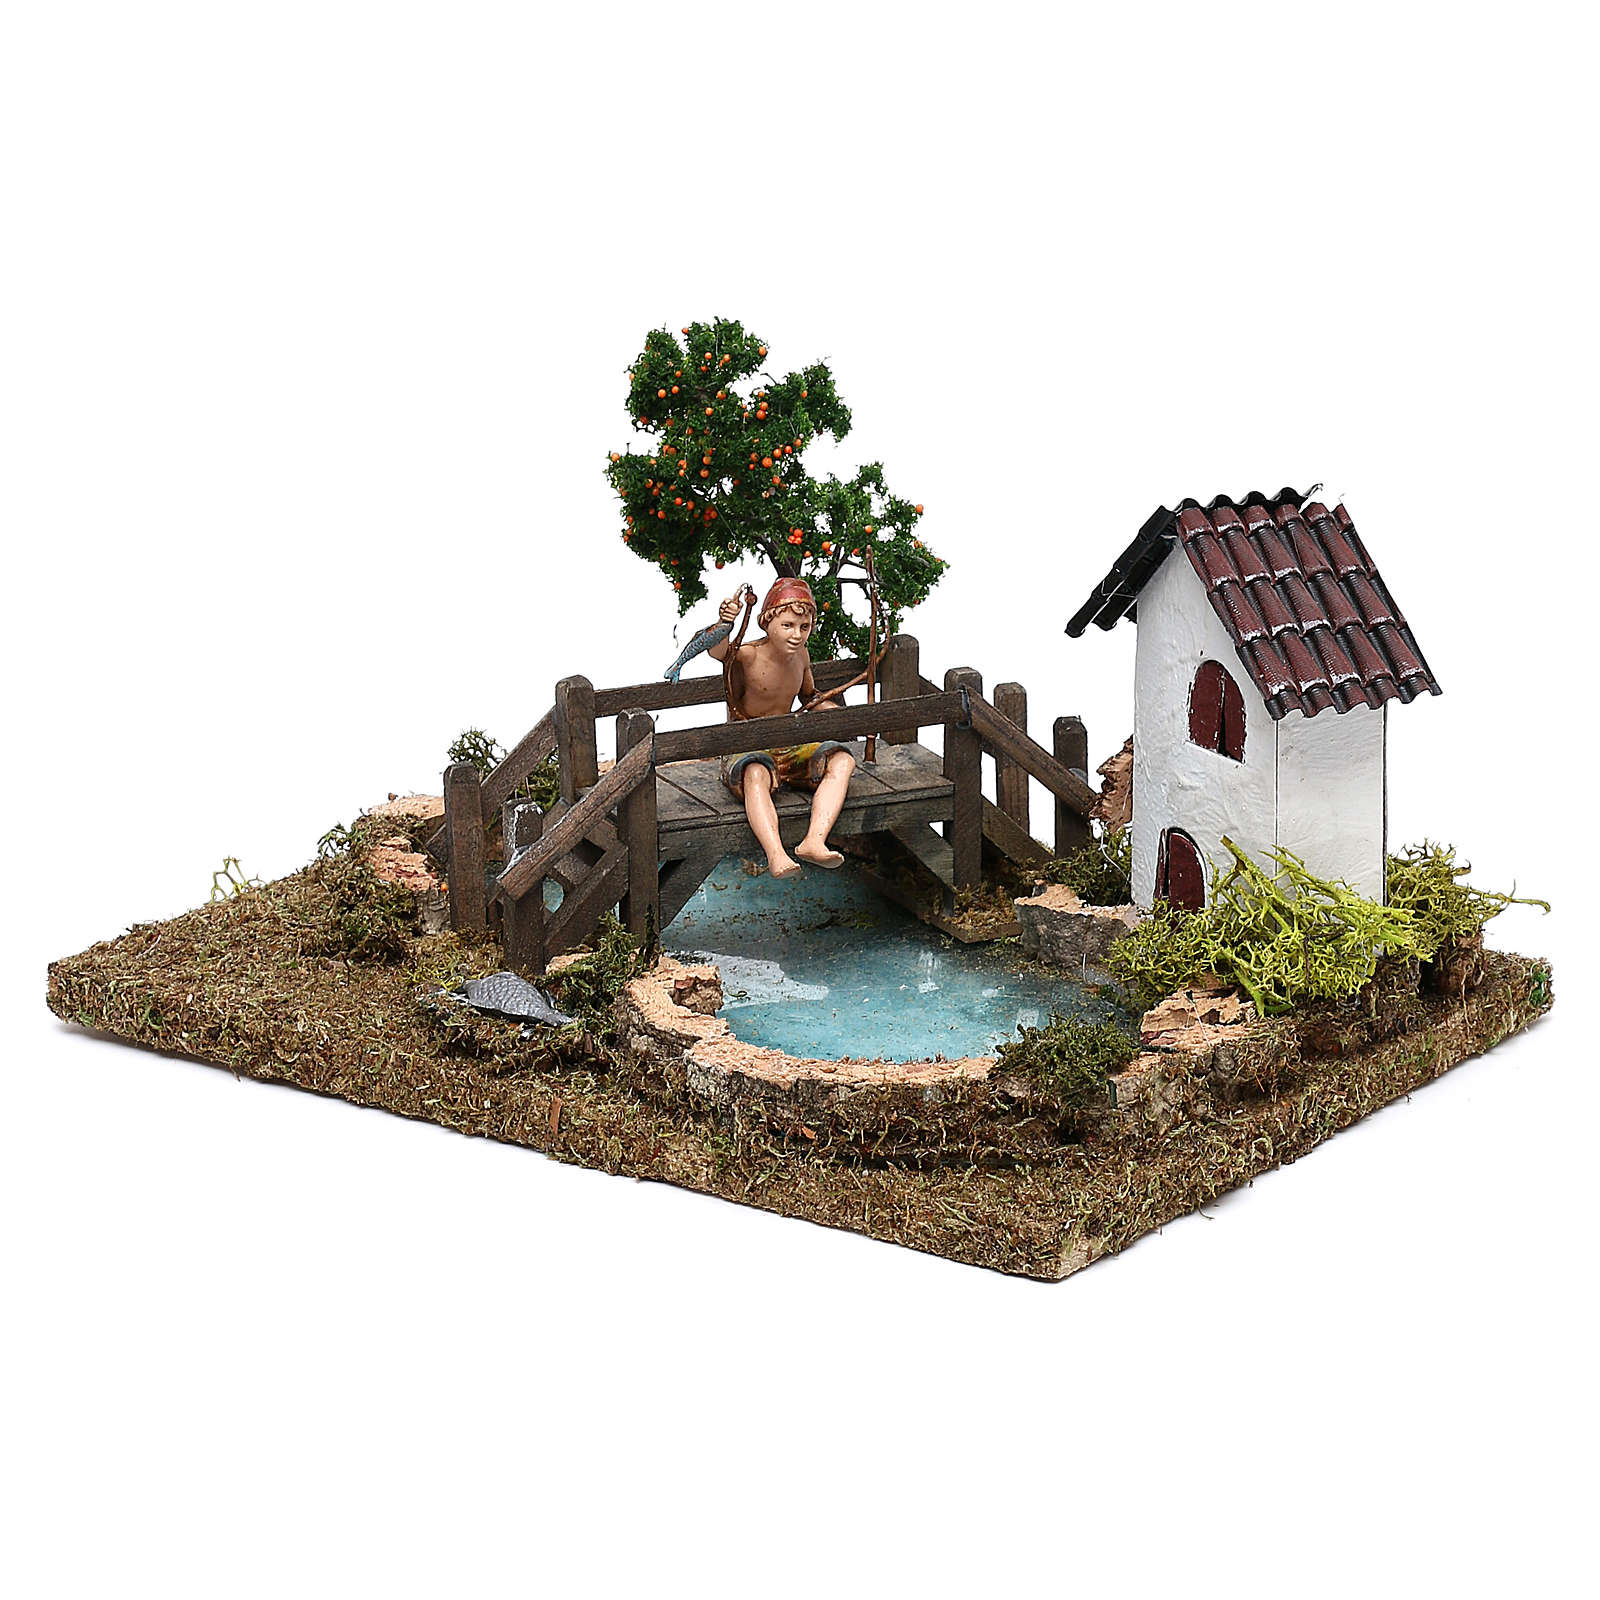 Pond with fisherman on a bridge for Nativity Scene 10 cm 4